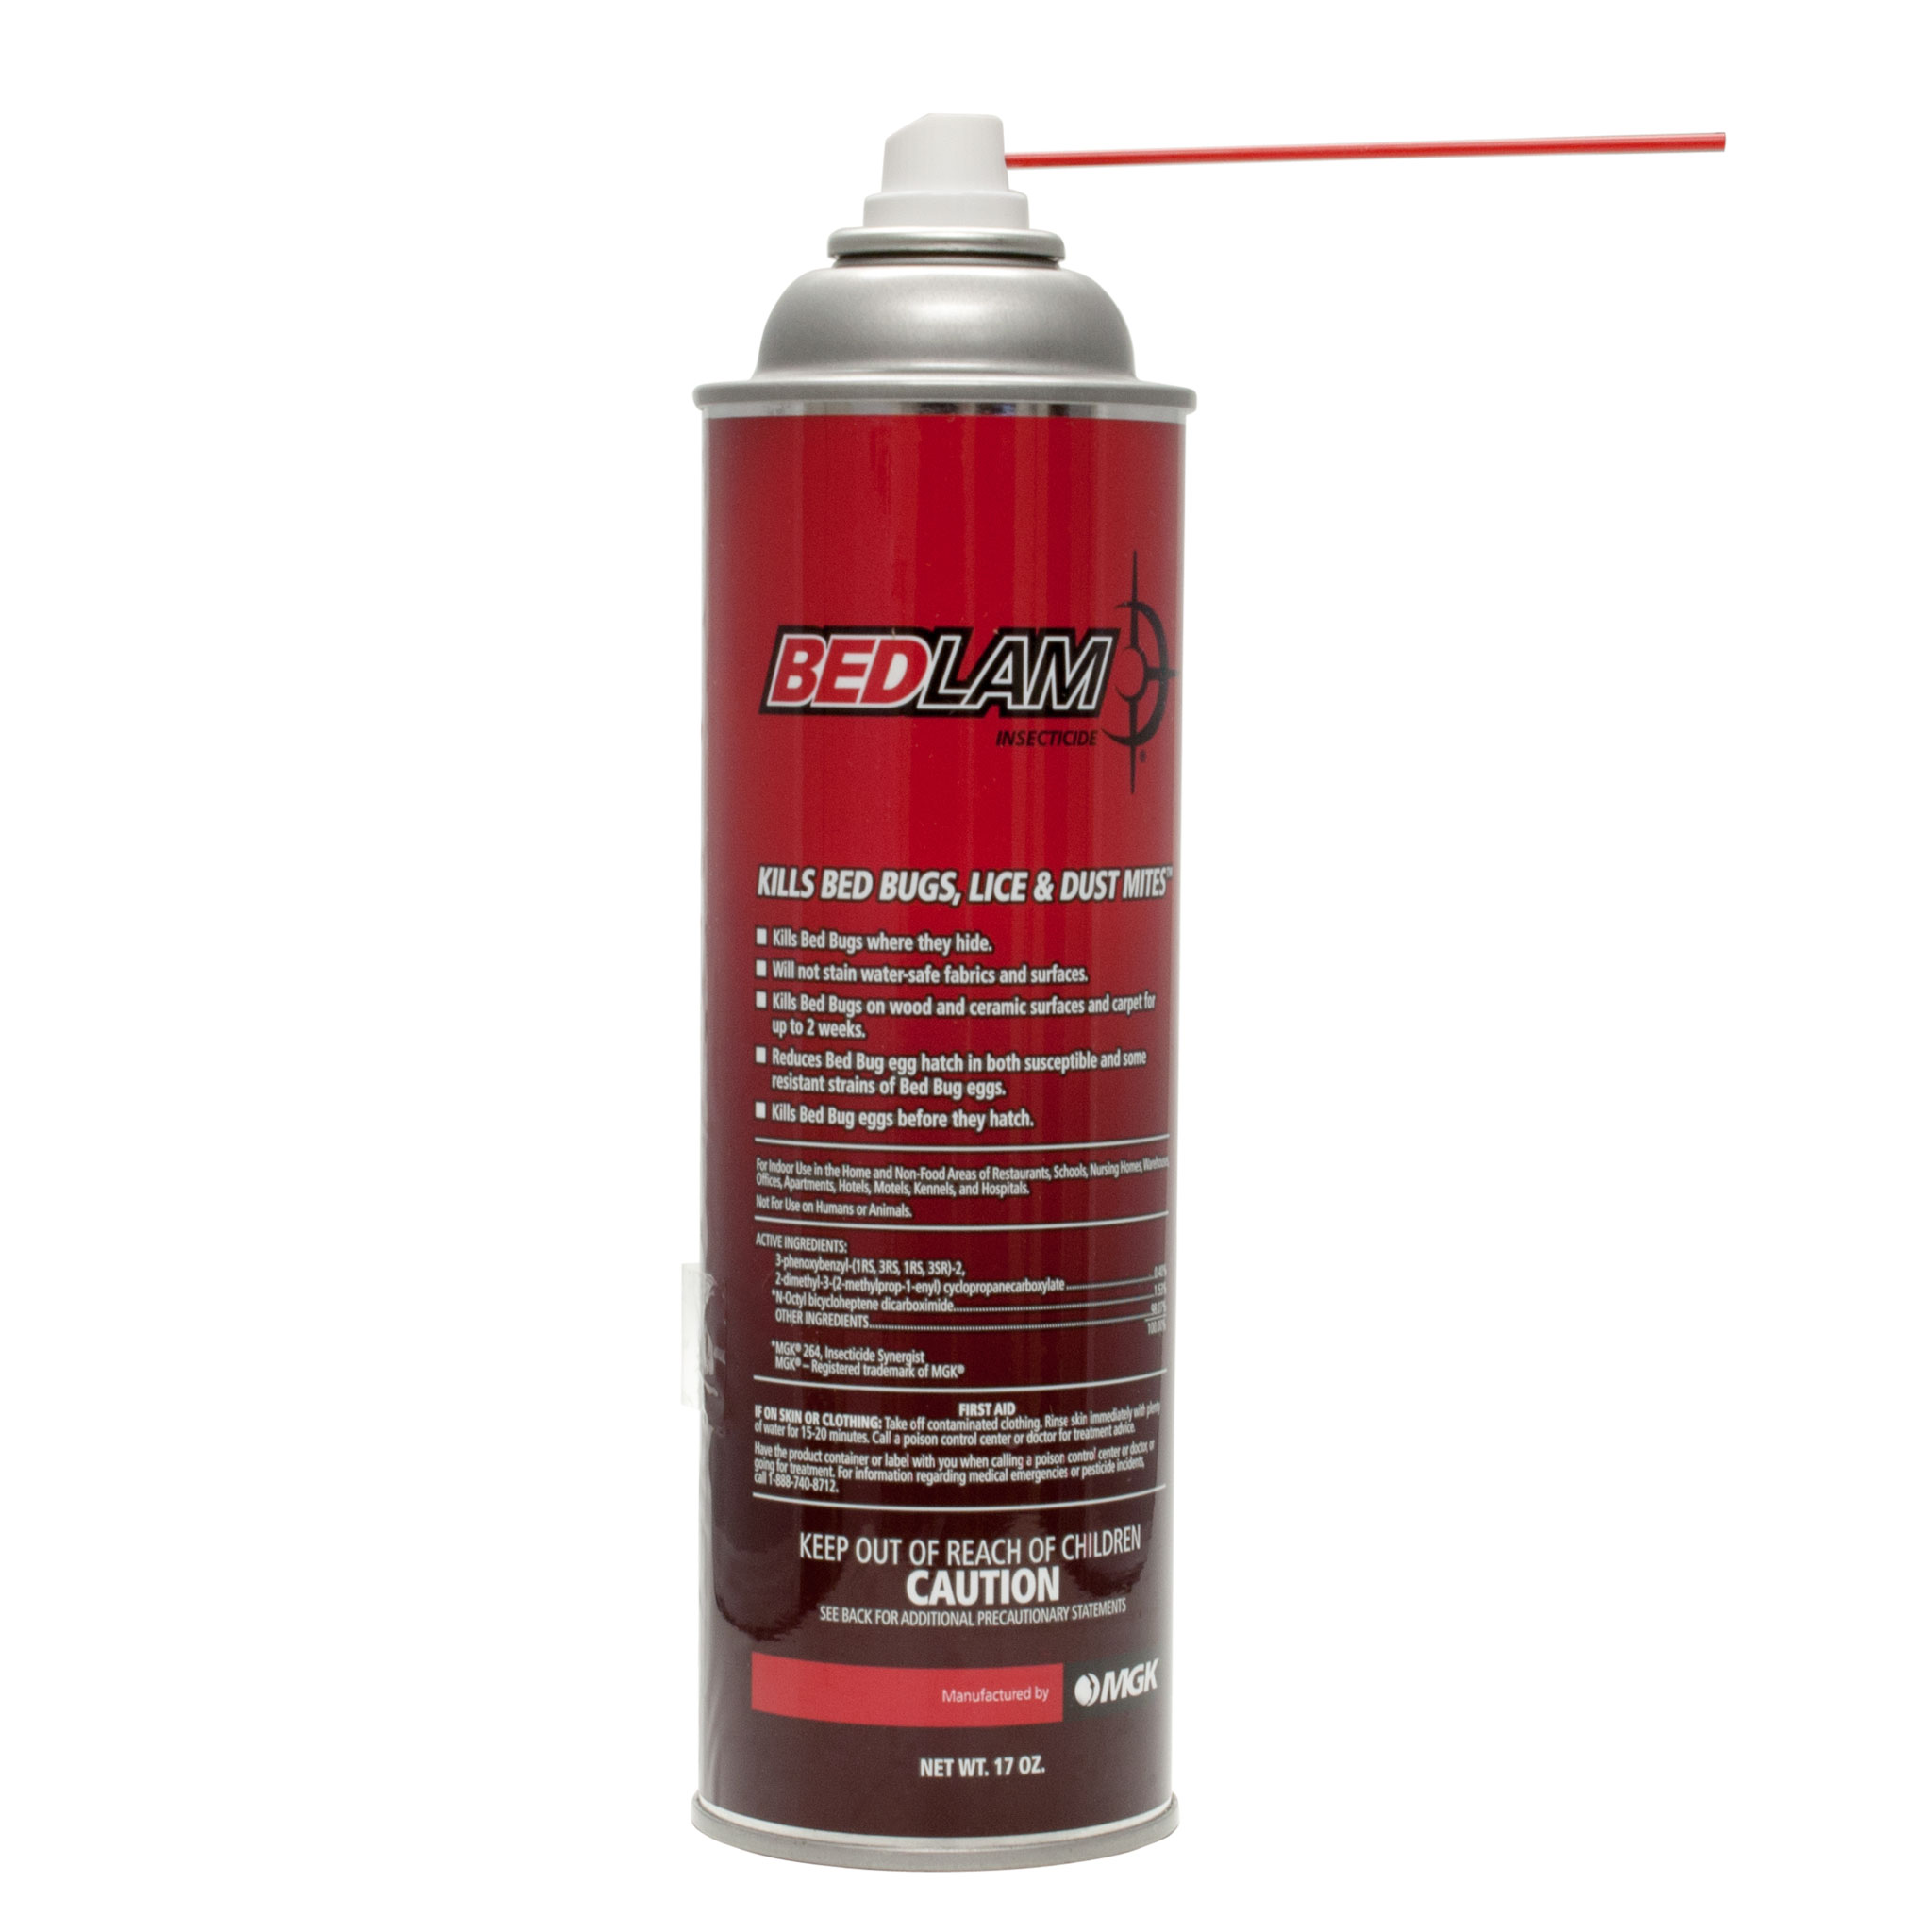 Bedlam Aerosol Insecticide Kills Bed Bugs Lice Amp More